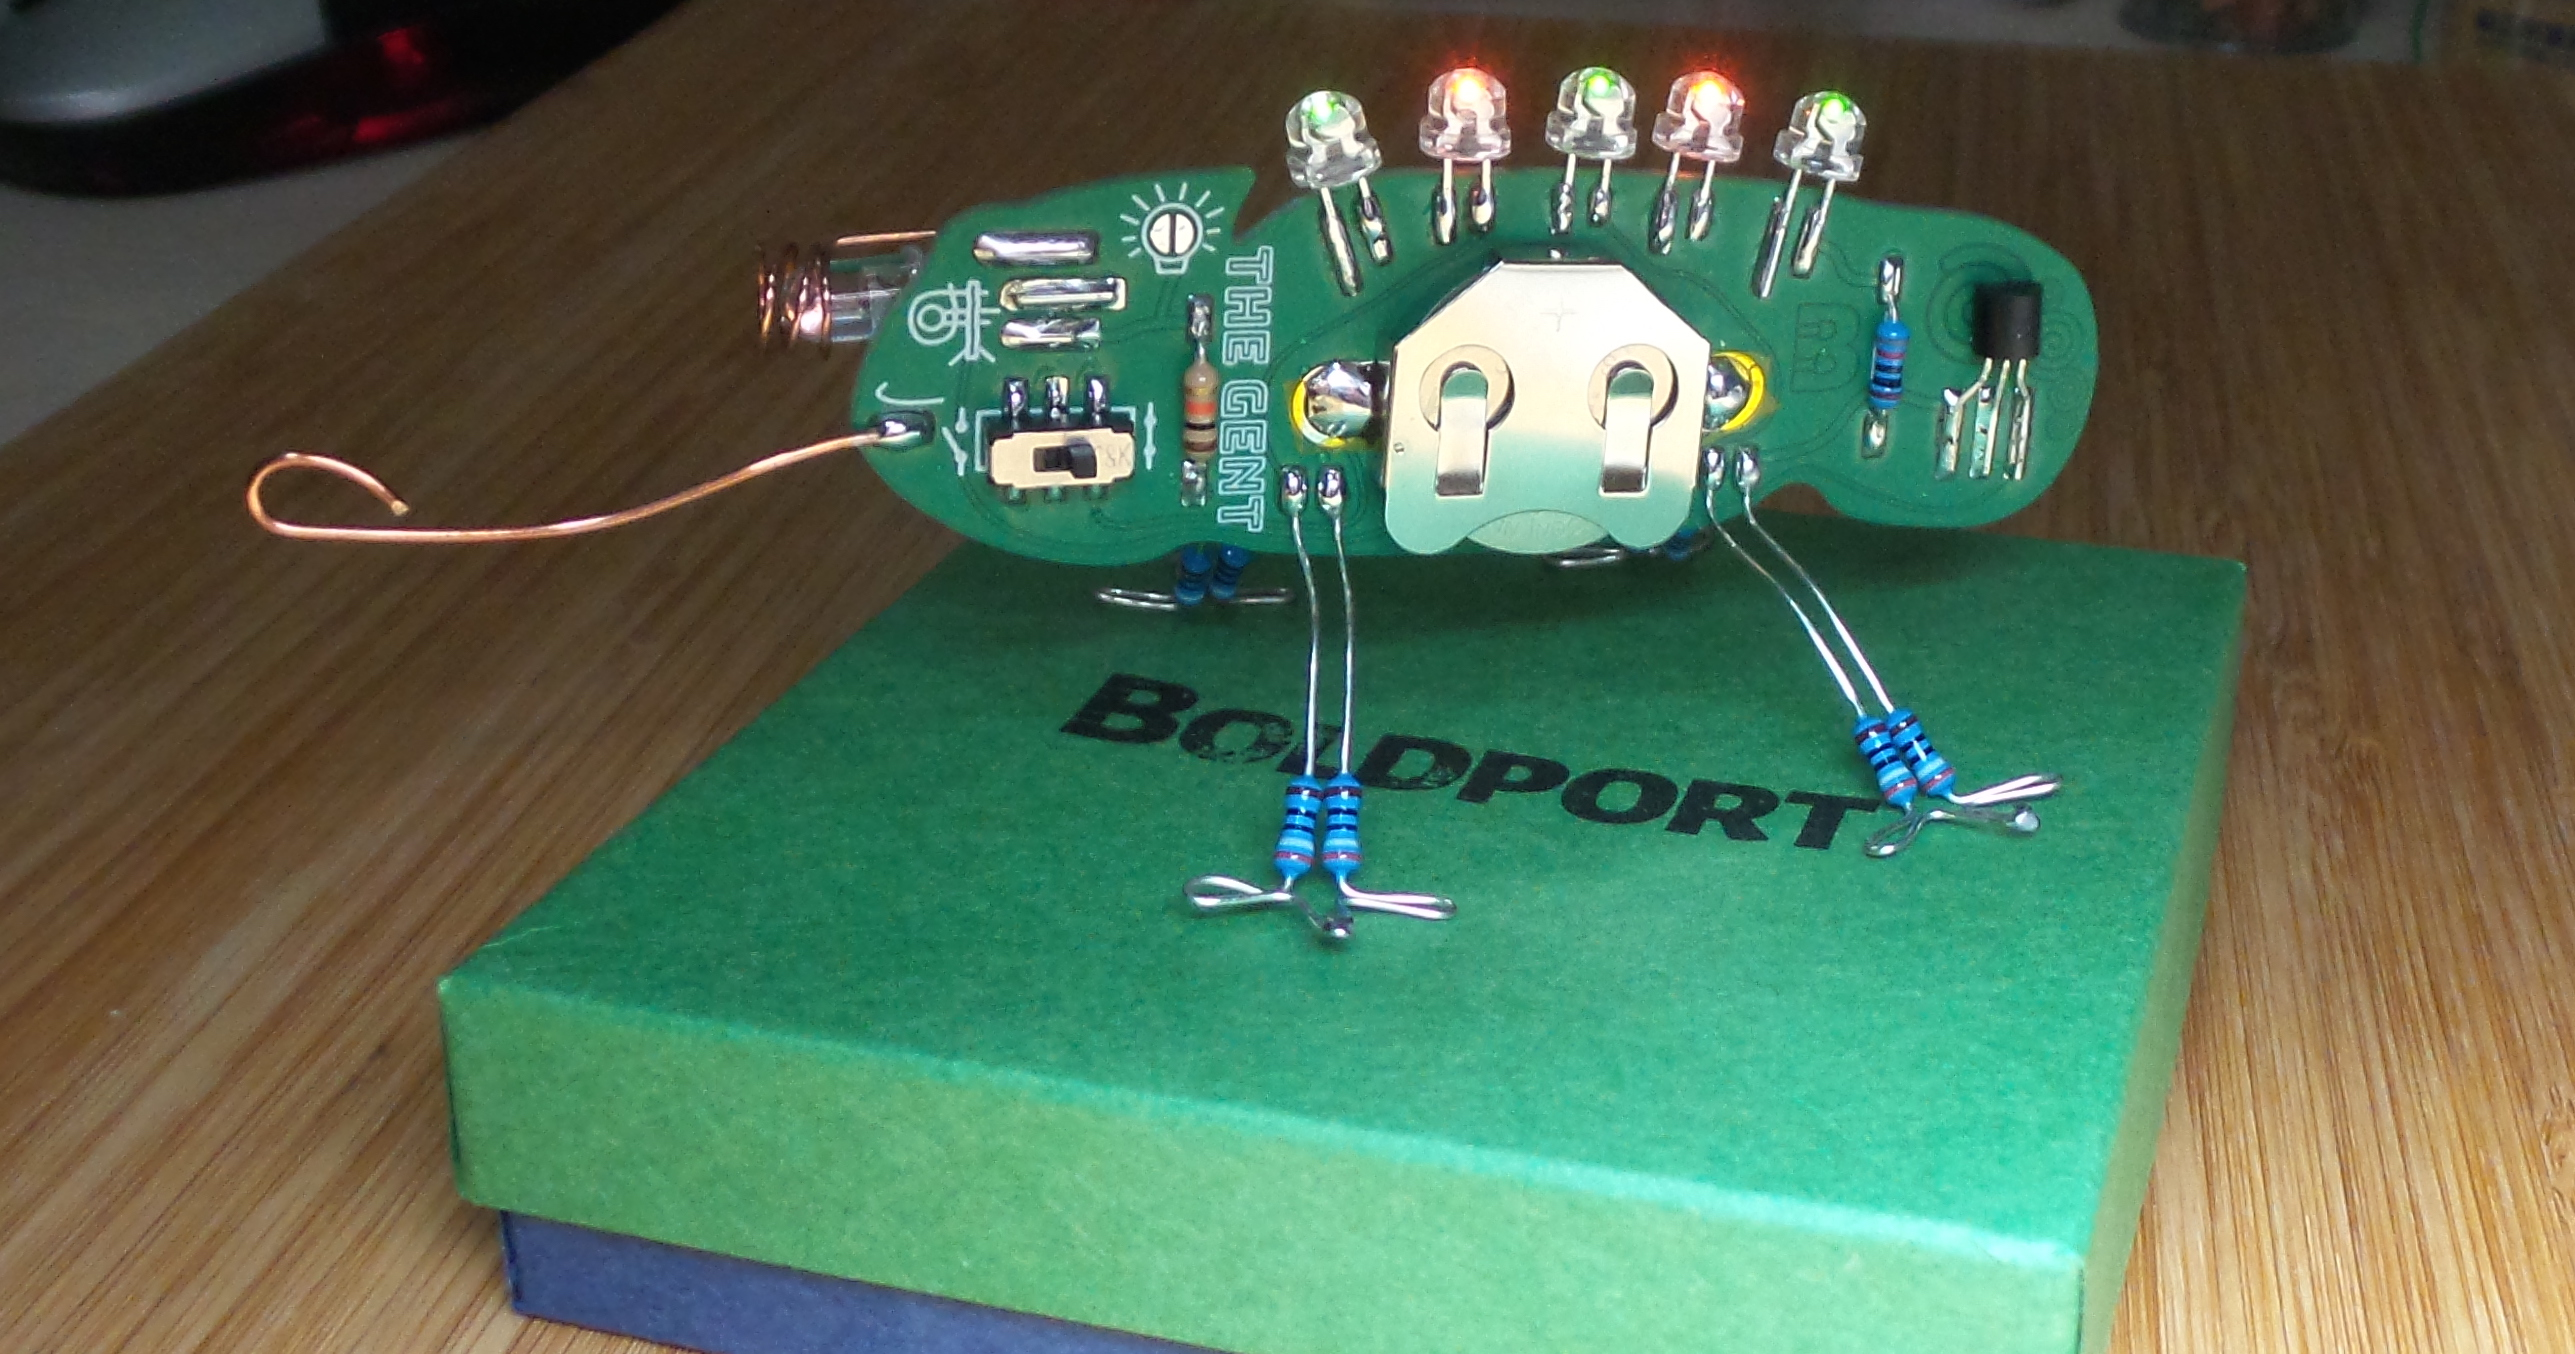 LEAP#284 any desk, bookcase or window sill deserves a #BoldportClub Gent